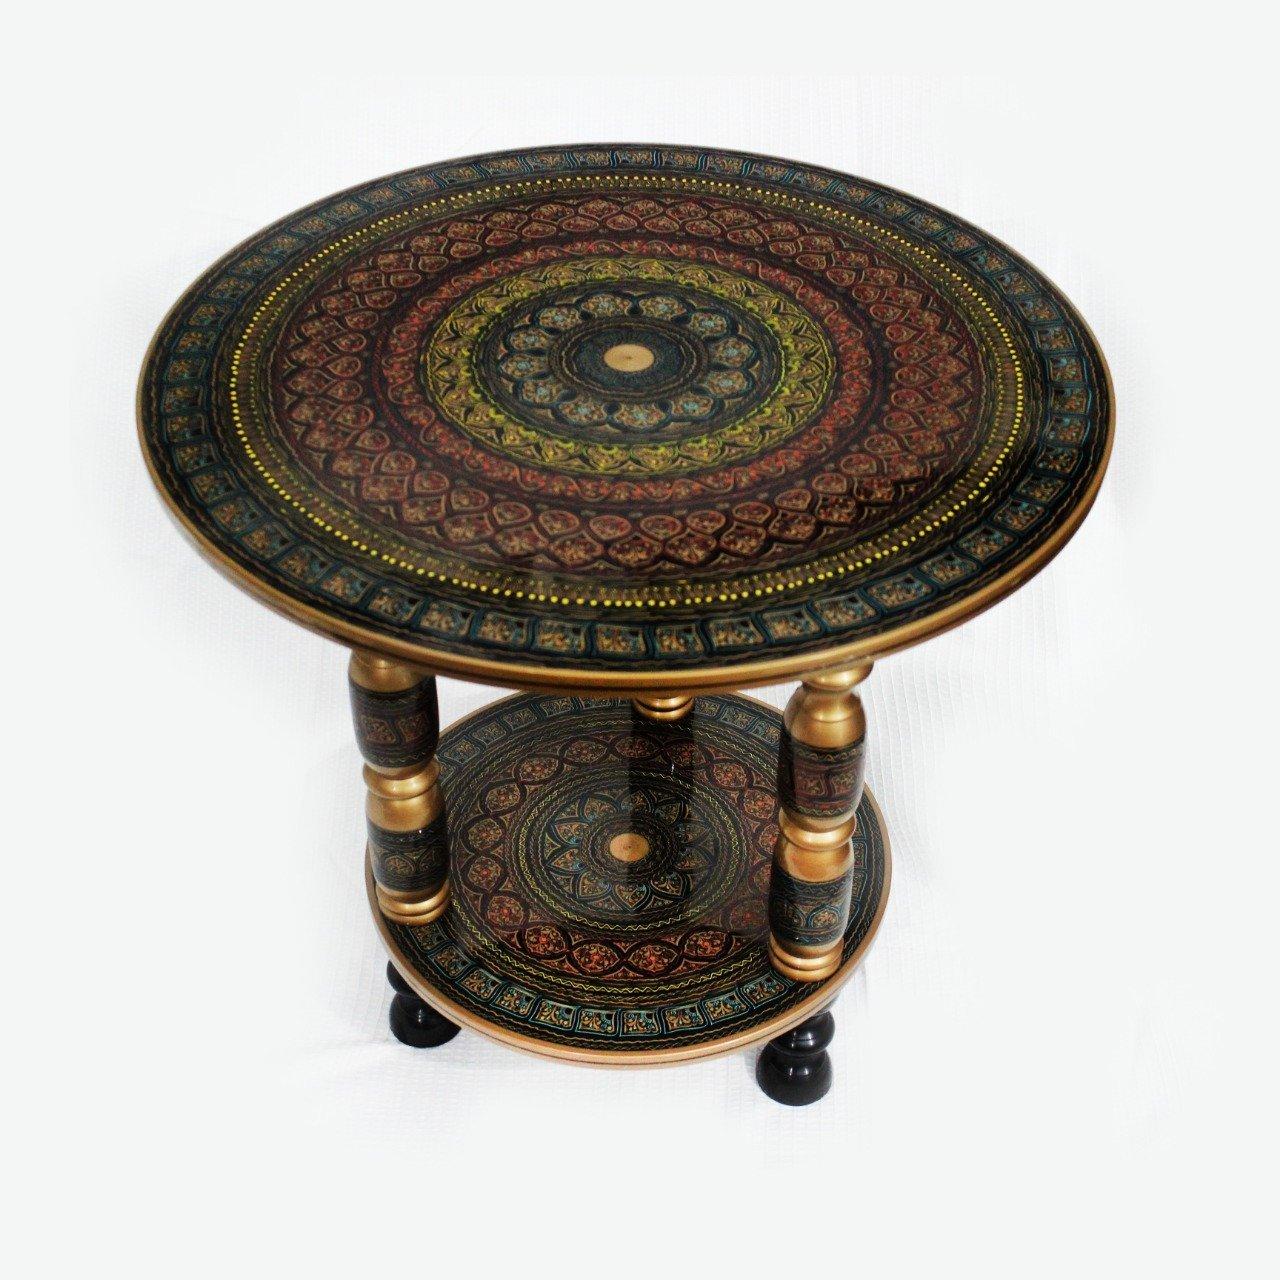 Double Wooden Table in Nakshi Art Top 24''- Black Gold - waseeh.com